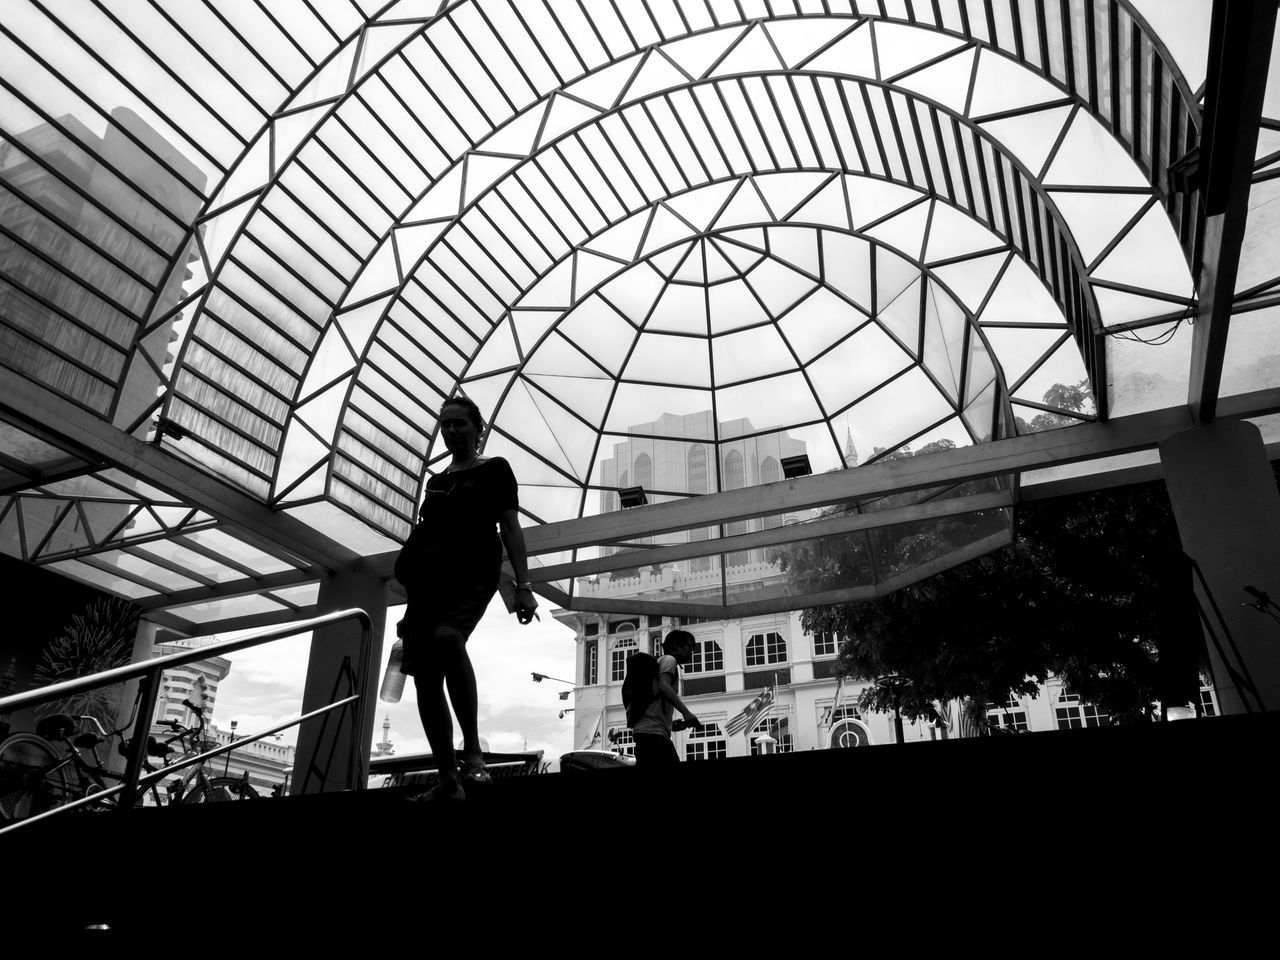 Silhouette of a woman walking down the stairs with a beautiful modern patterned arch above her Arch Architectural Feature B&w B&w Street Photography Black And White Blackandwhite Built Structure City City Life Modern Architecture Patterns Silhouette Streetphotography Urban Urbanphotography